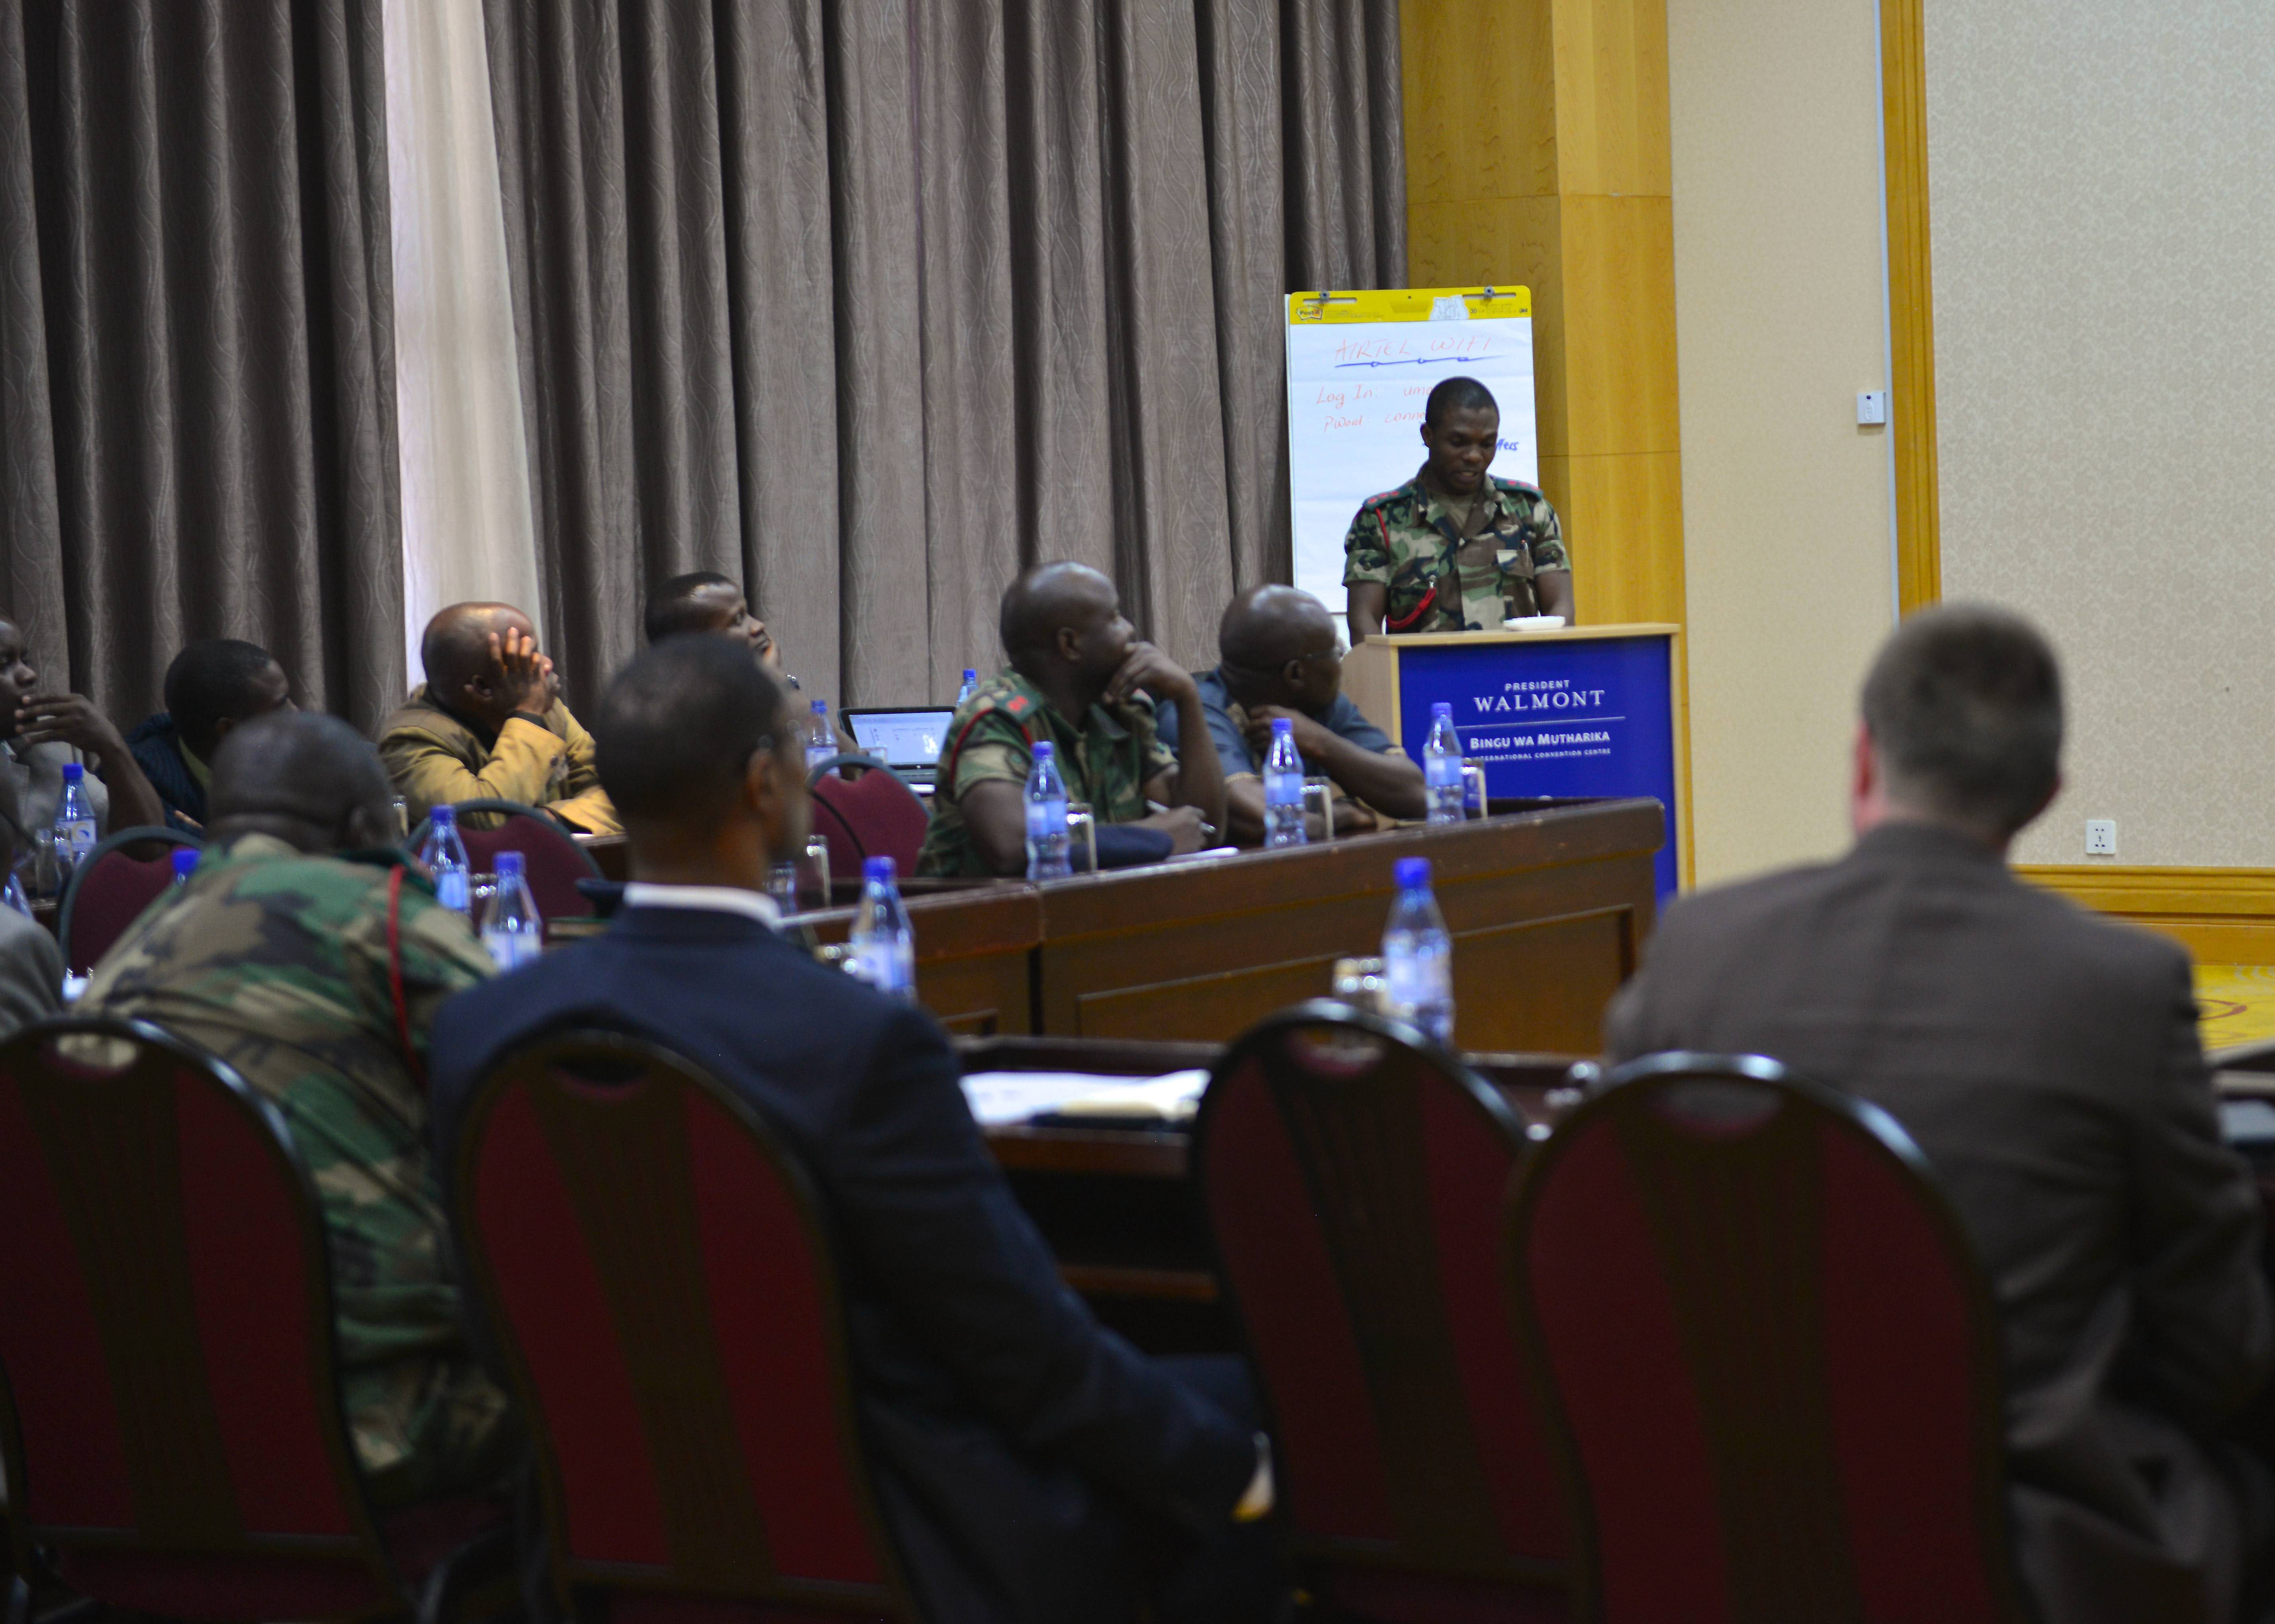 (Aug. 17, 2017) ñ Capt. K. Mlelemba, Malawi Defense Force (MDF) Public Information Officer, addresses both members of the MDF and U.S. Africa Command during a plannerís meeting in support of Africa Endeavor 2017 at the Umodzi Convention Center in Lilongwe, Malawi. Africa Endeavor is an annual senior leader and communications symposium and technology expo designed to develop standardized, multinational communications practices for peacekeeping and disaster response missions mandated by the African Union and the United Nations.